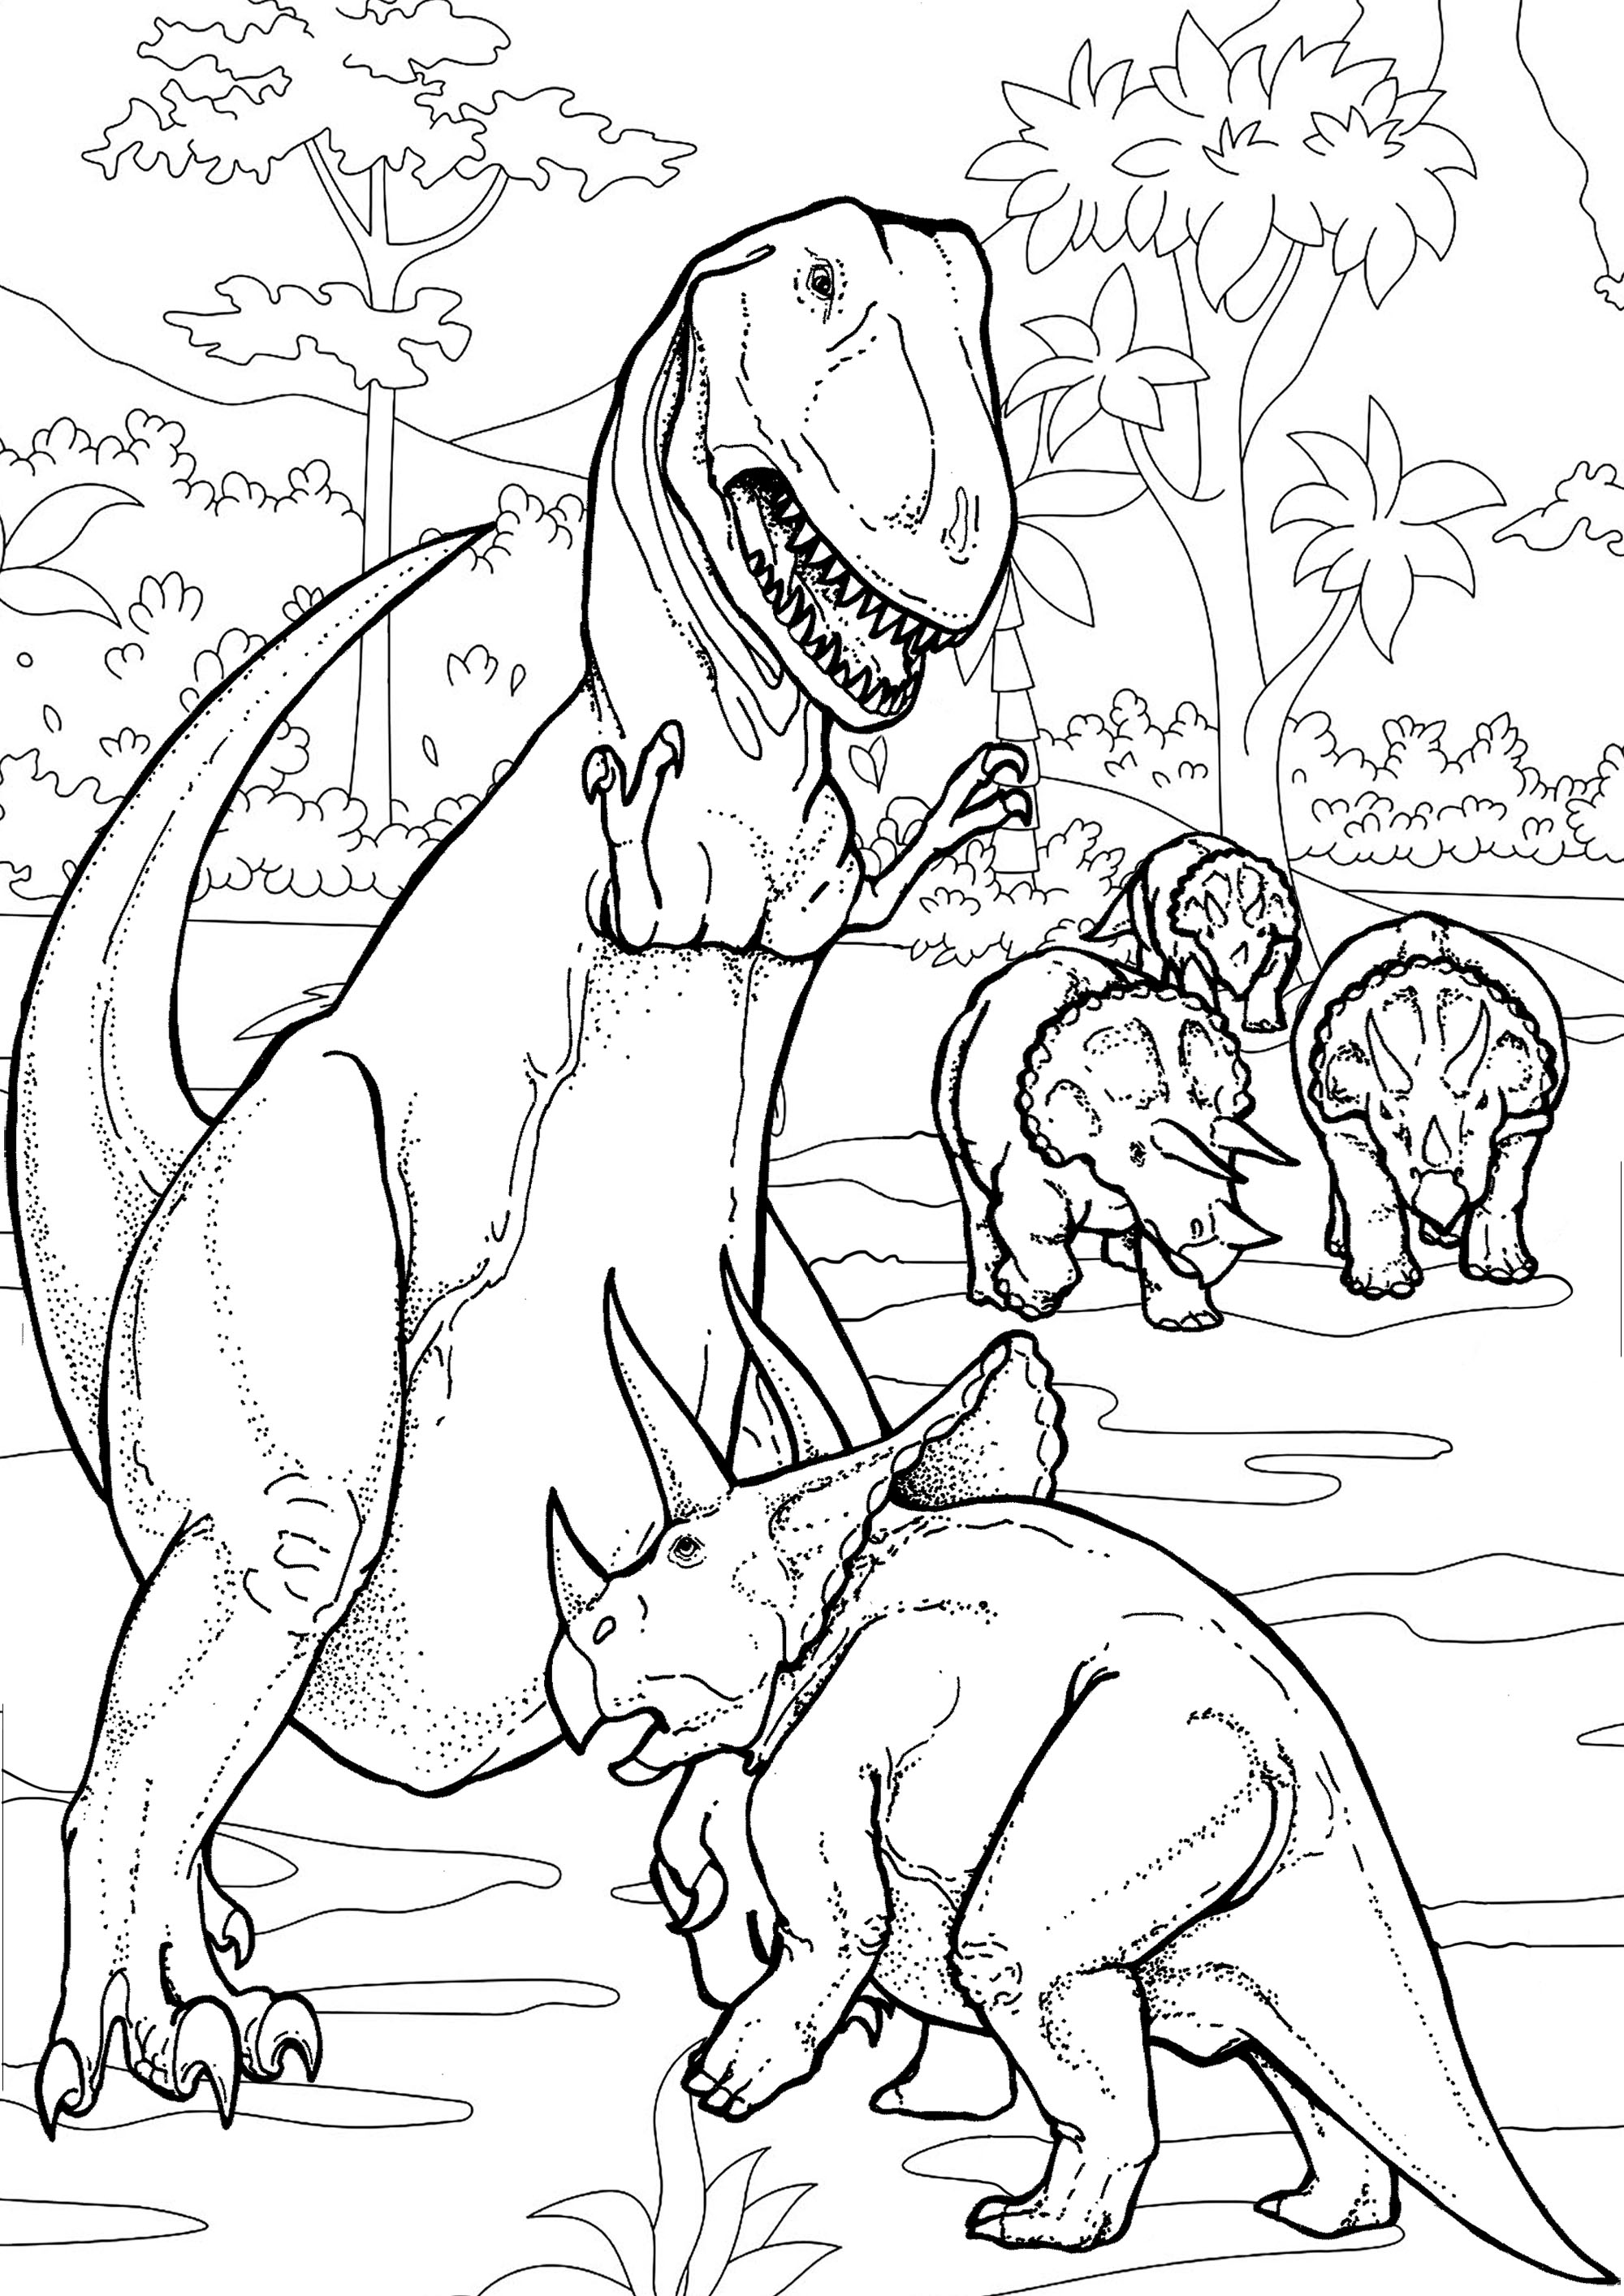 Dinosaurs Battle Dinosaurs Adult Coloring Pages